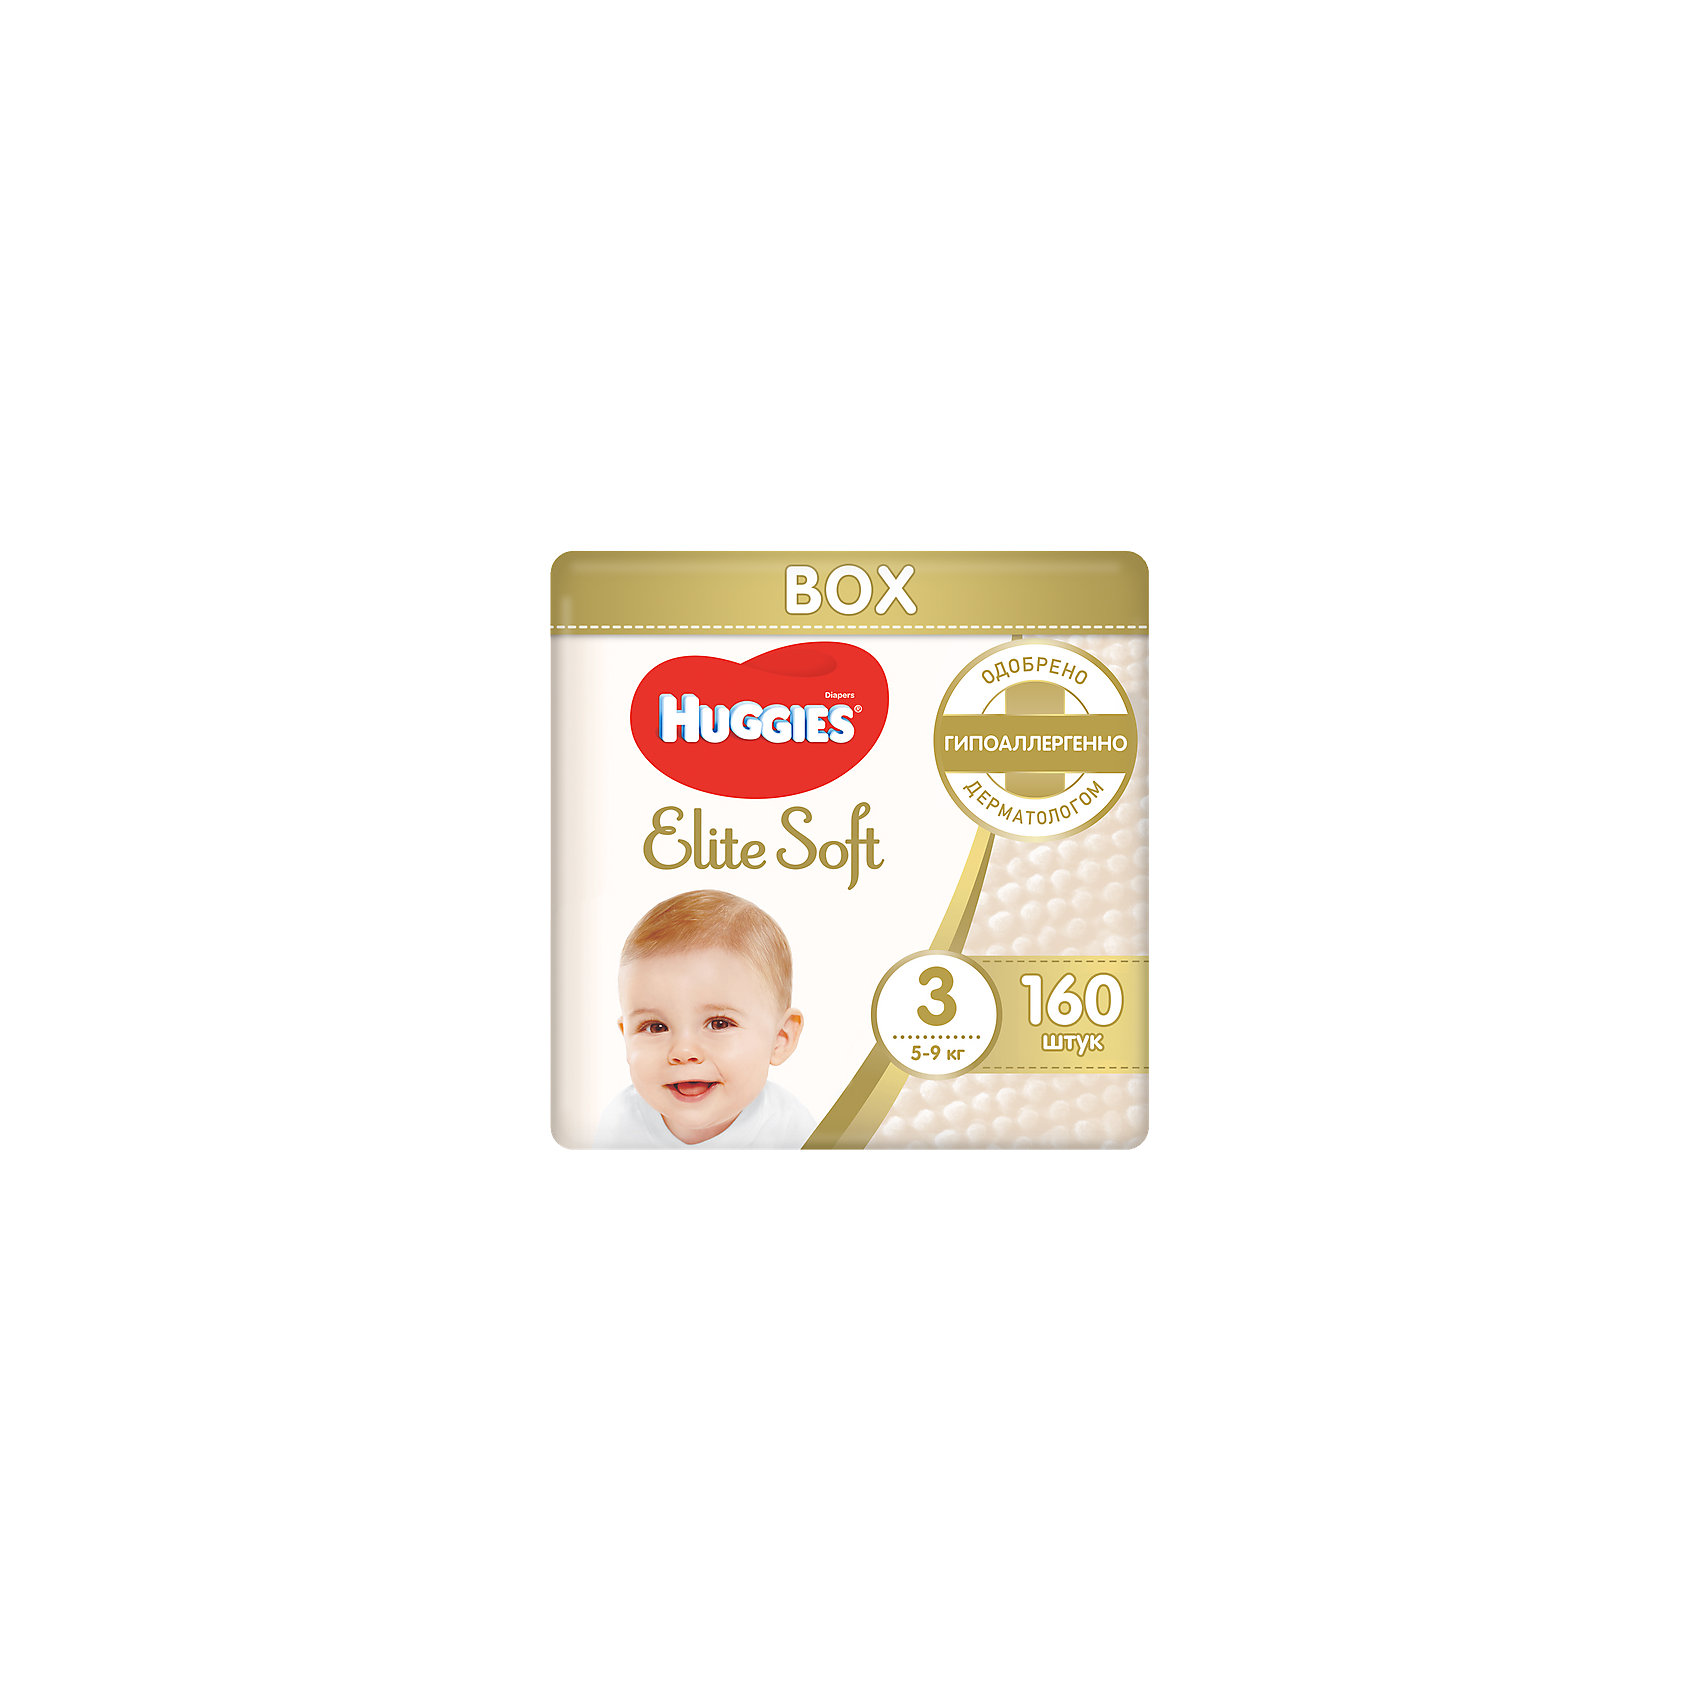 ���������� Elite Soft 3, 5-9 ��, 160 ��., Huggies (HUGGIES)